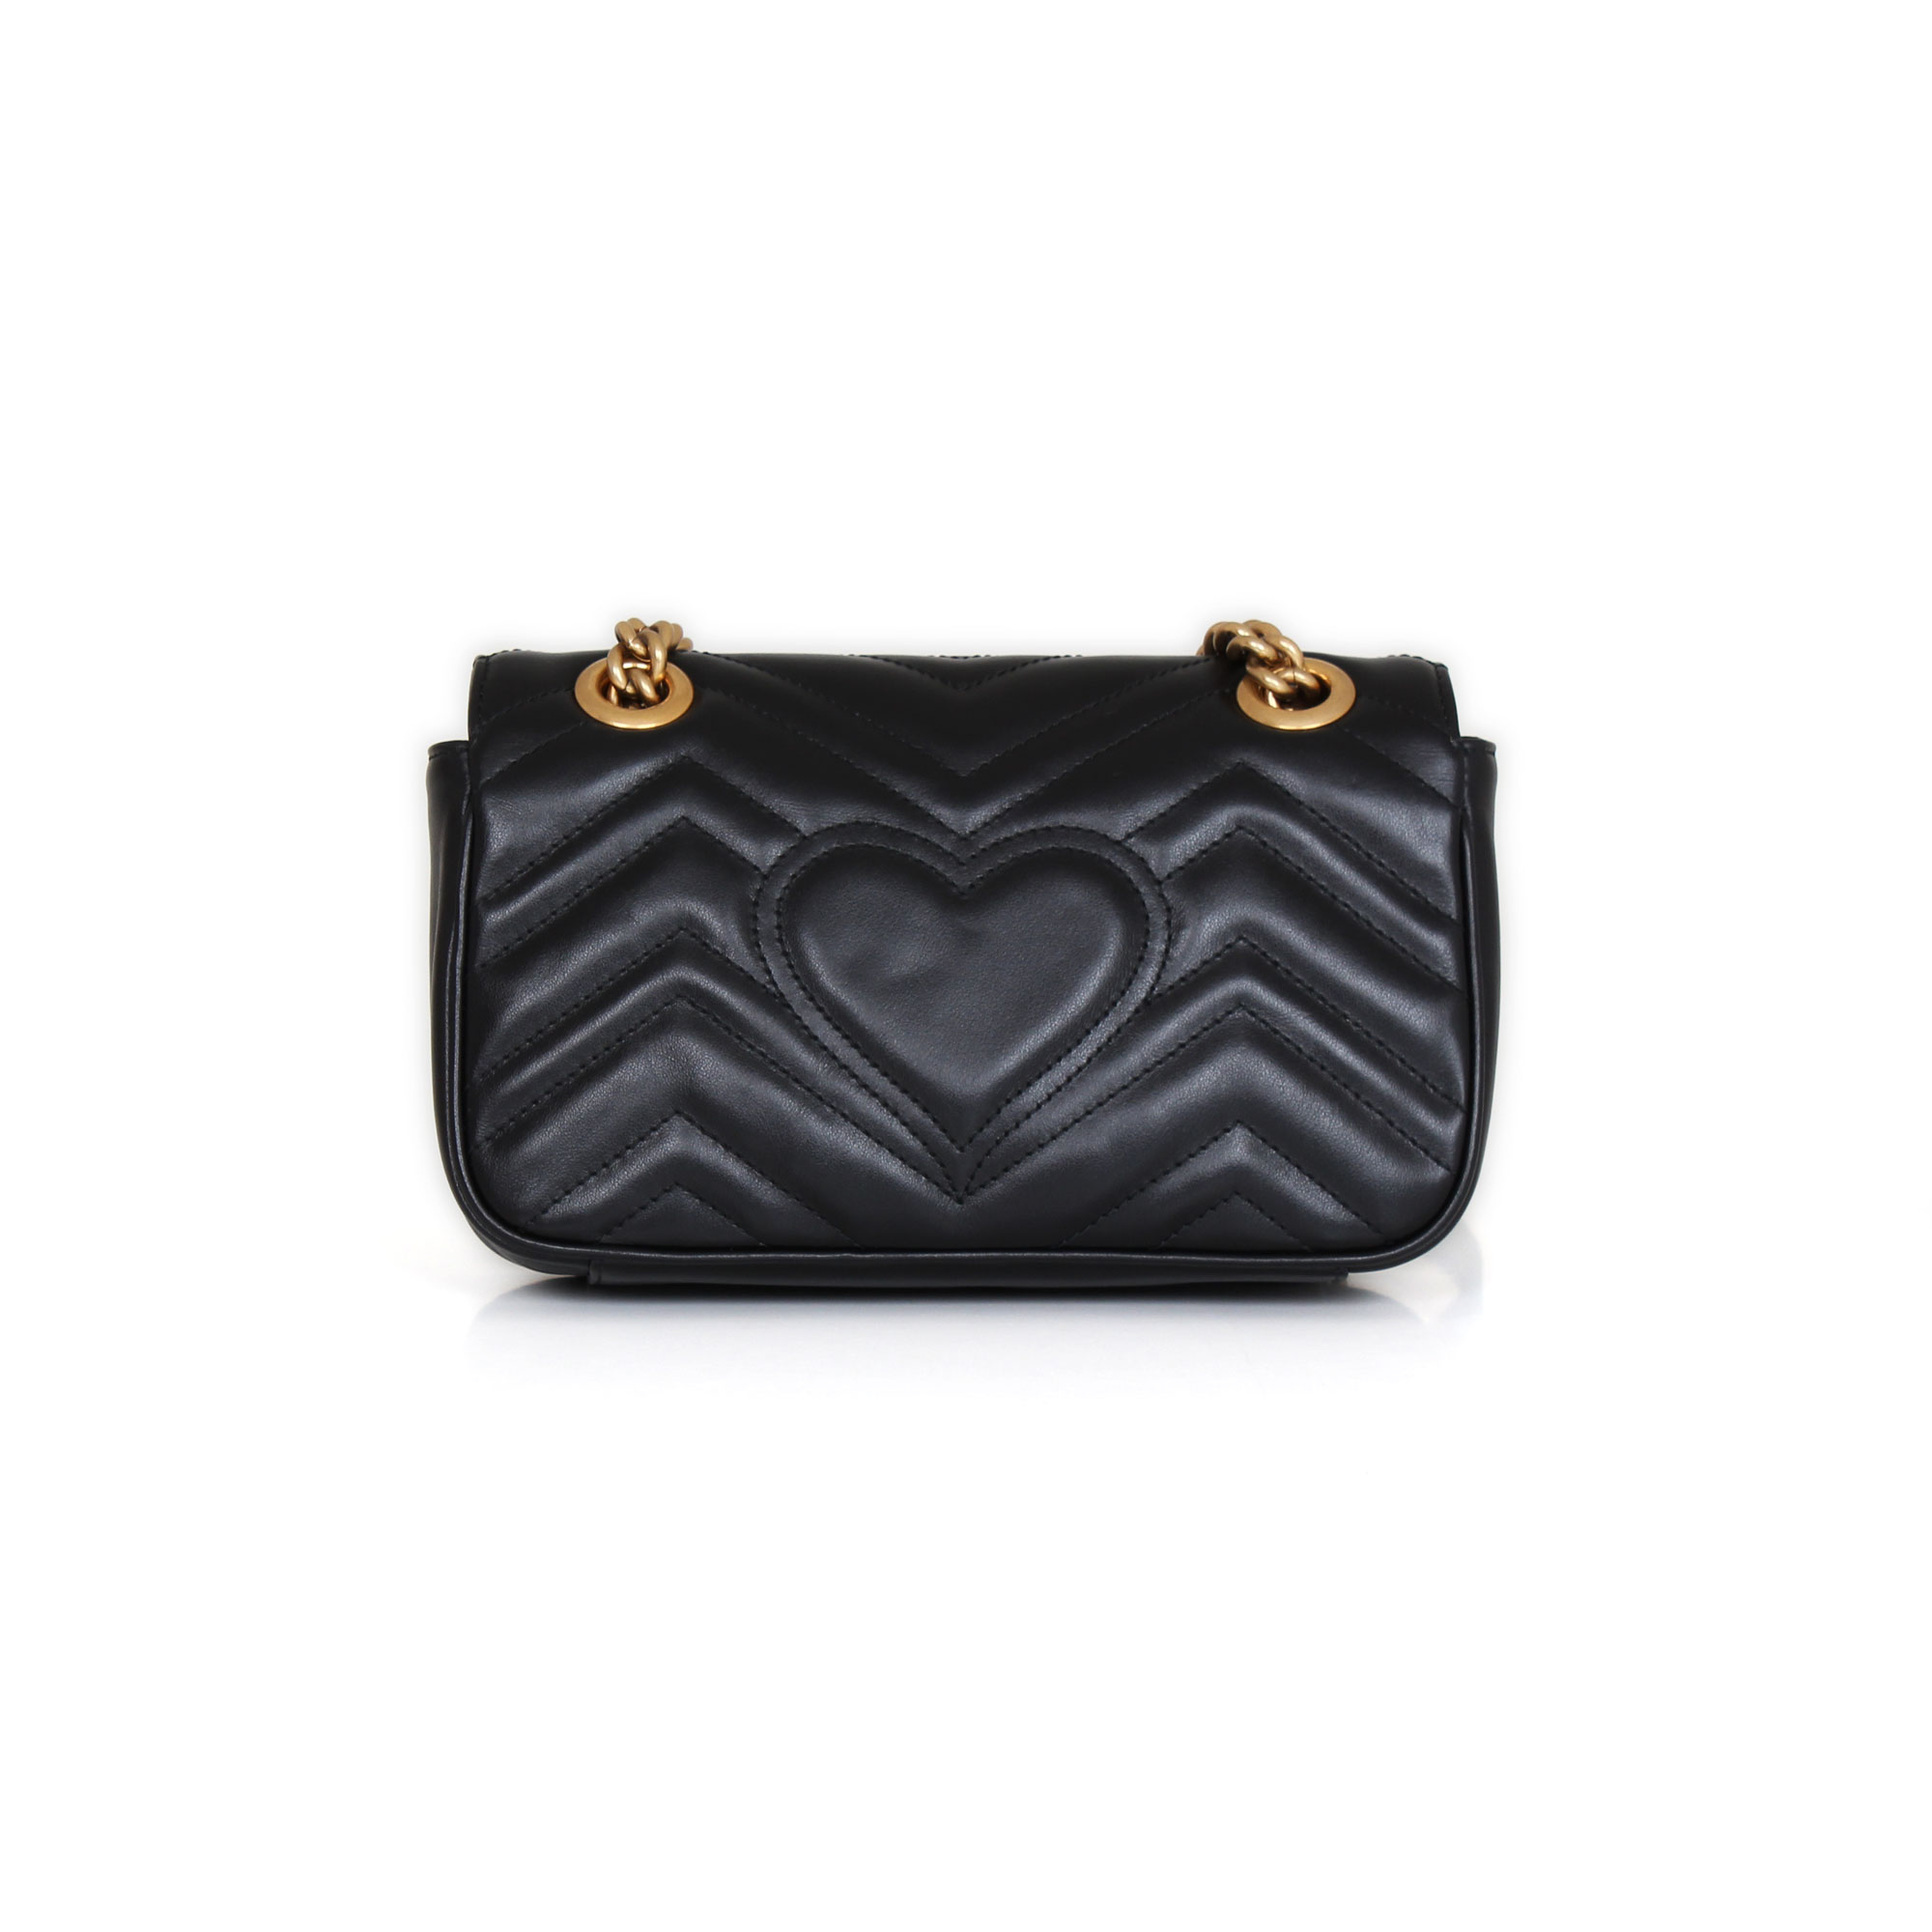 49c2d5f099c Gucci GG Mini Marmont Black cowhide leather